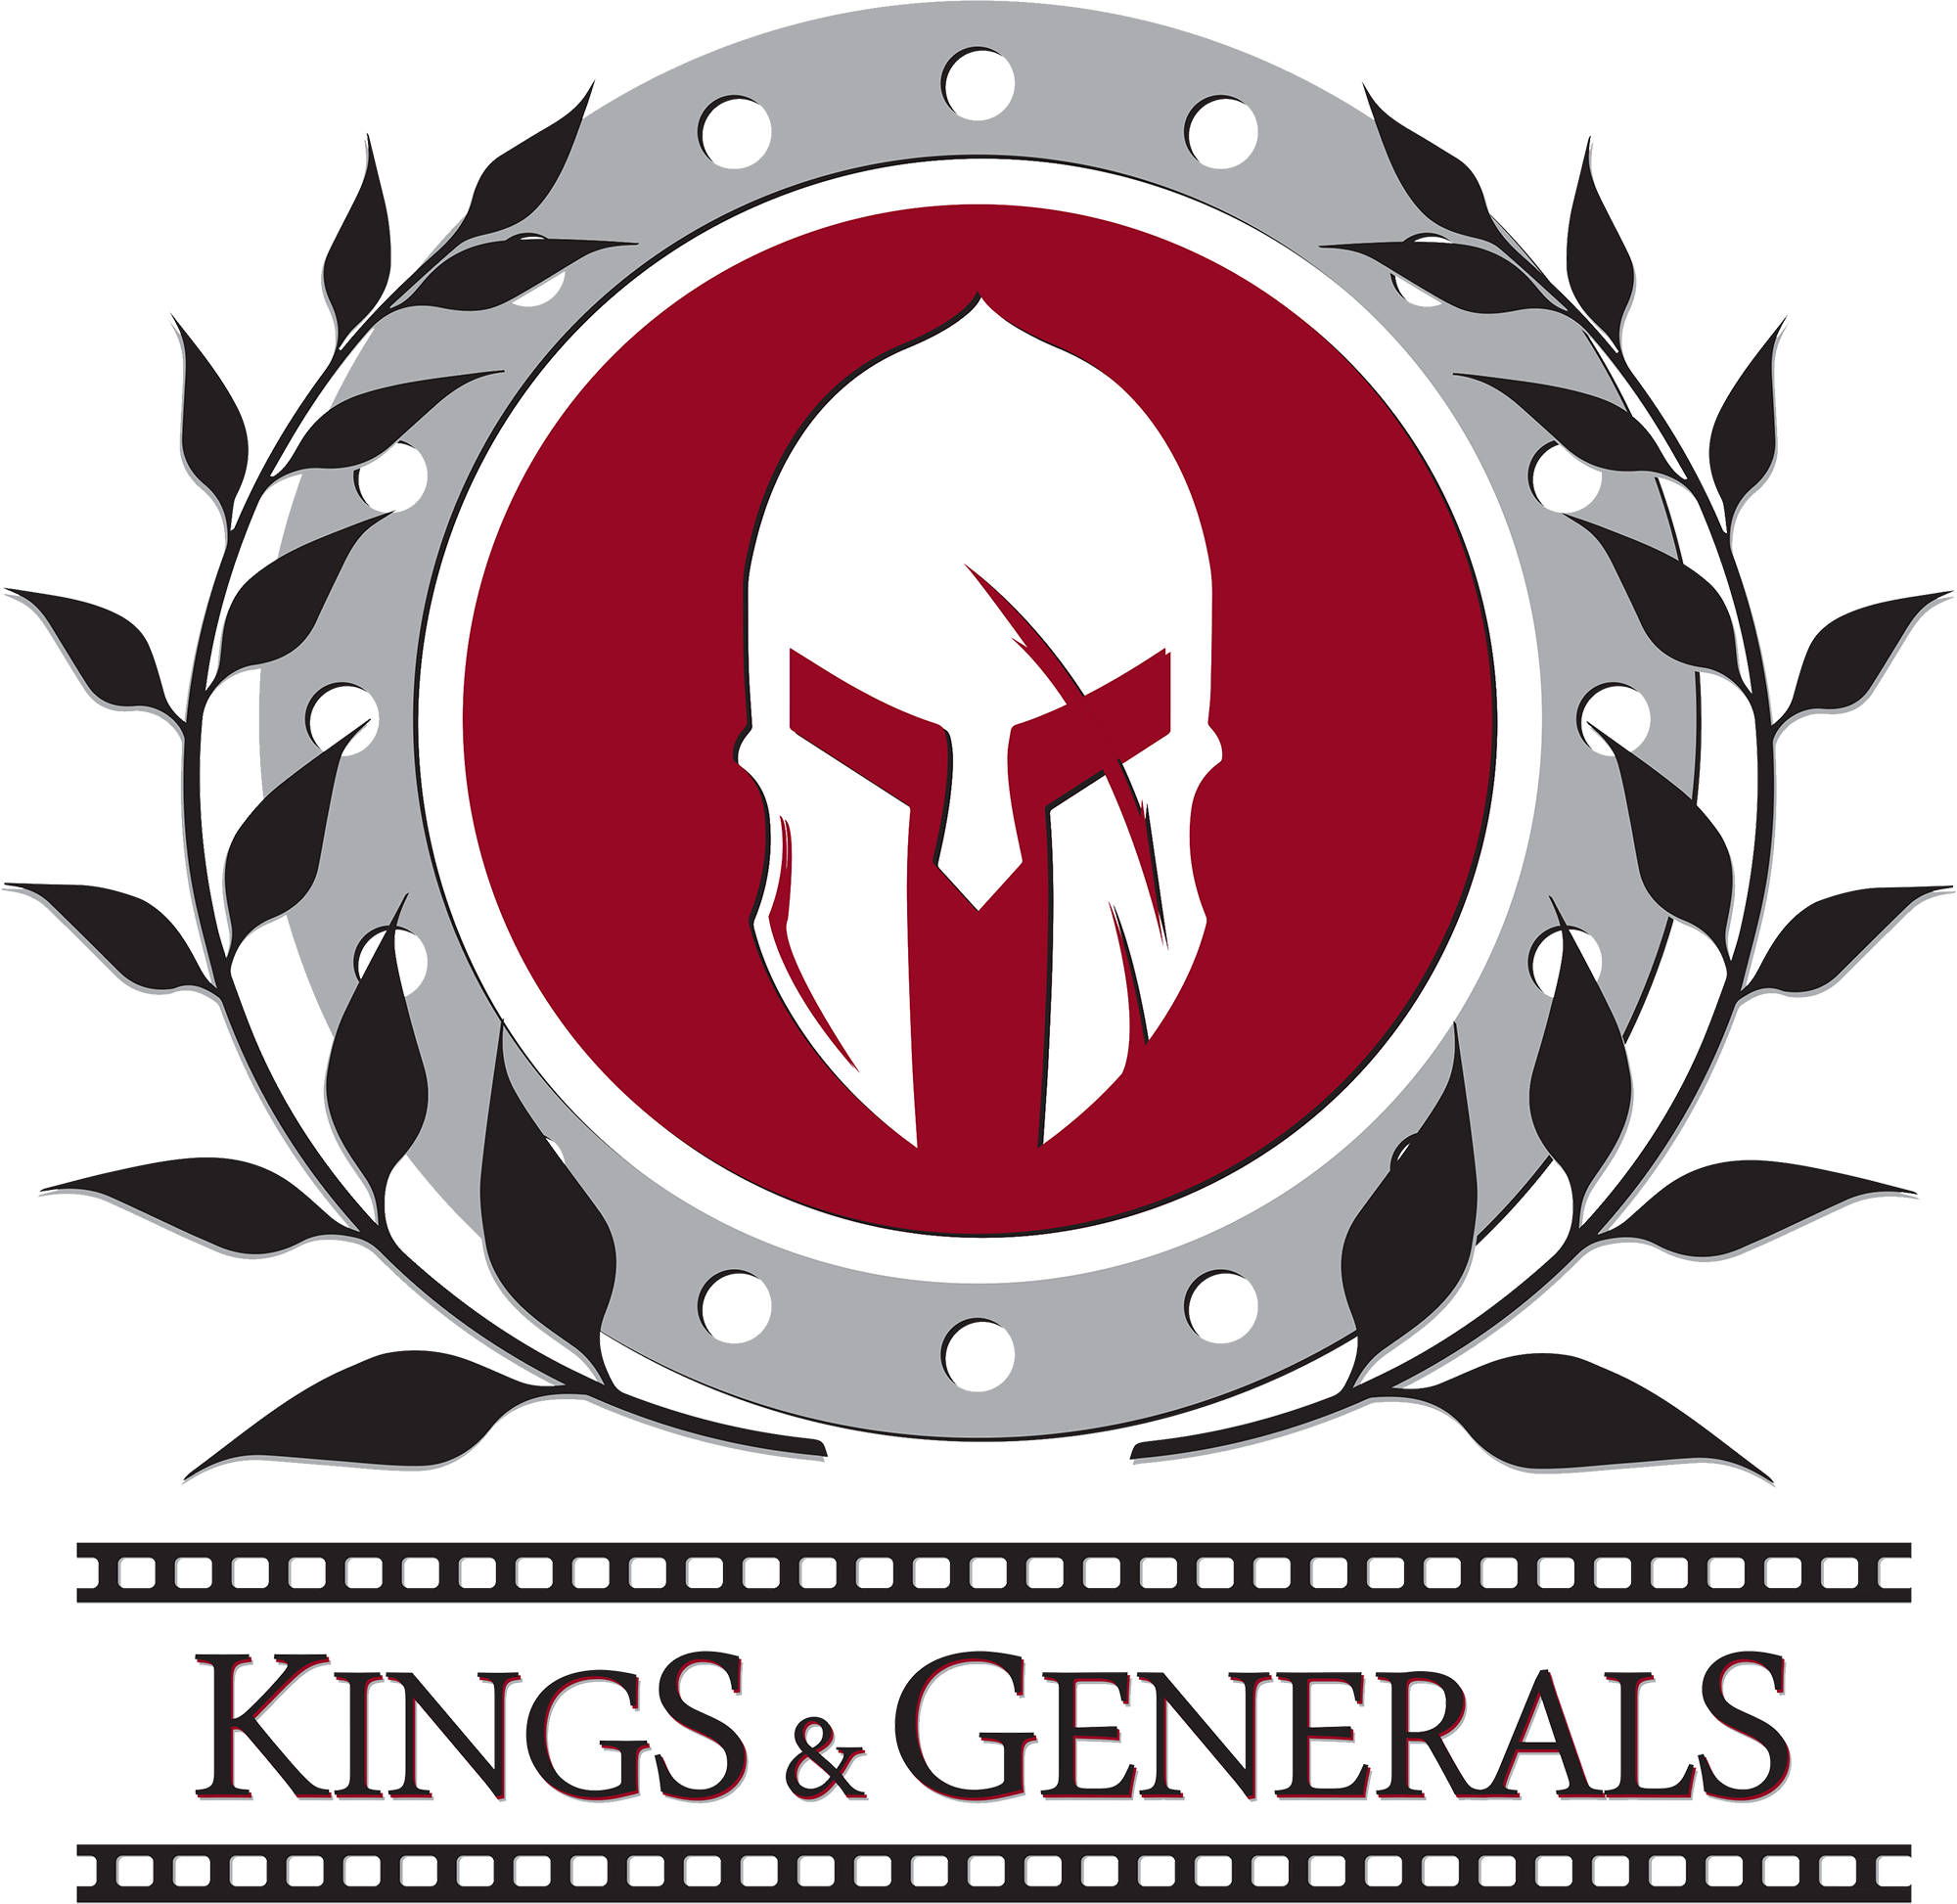 Kings and Generals logo